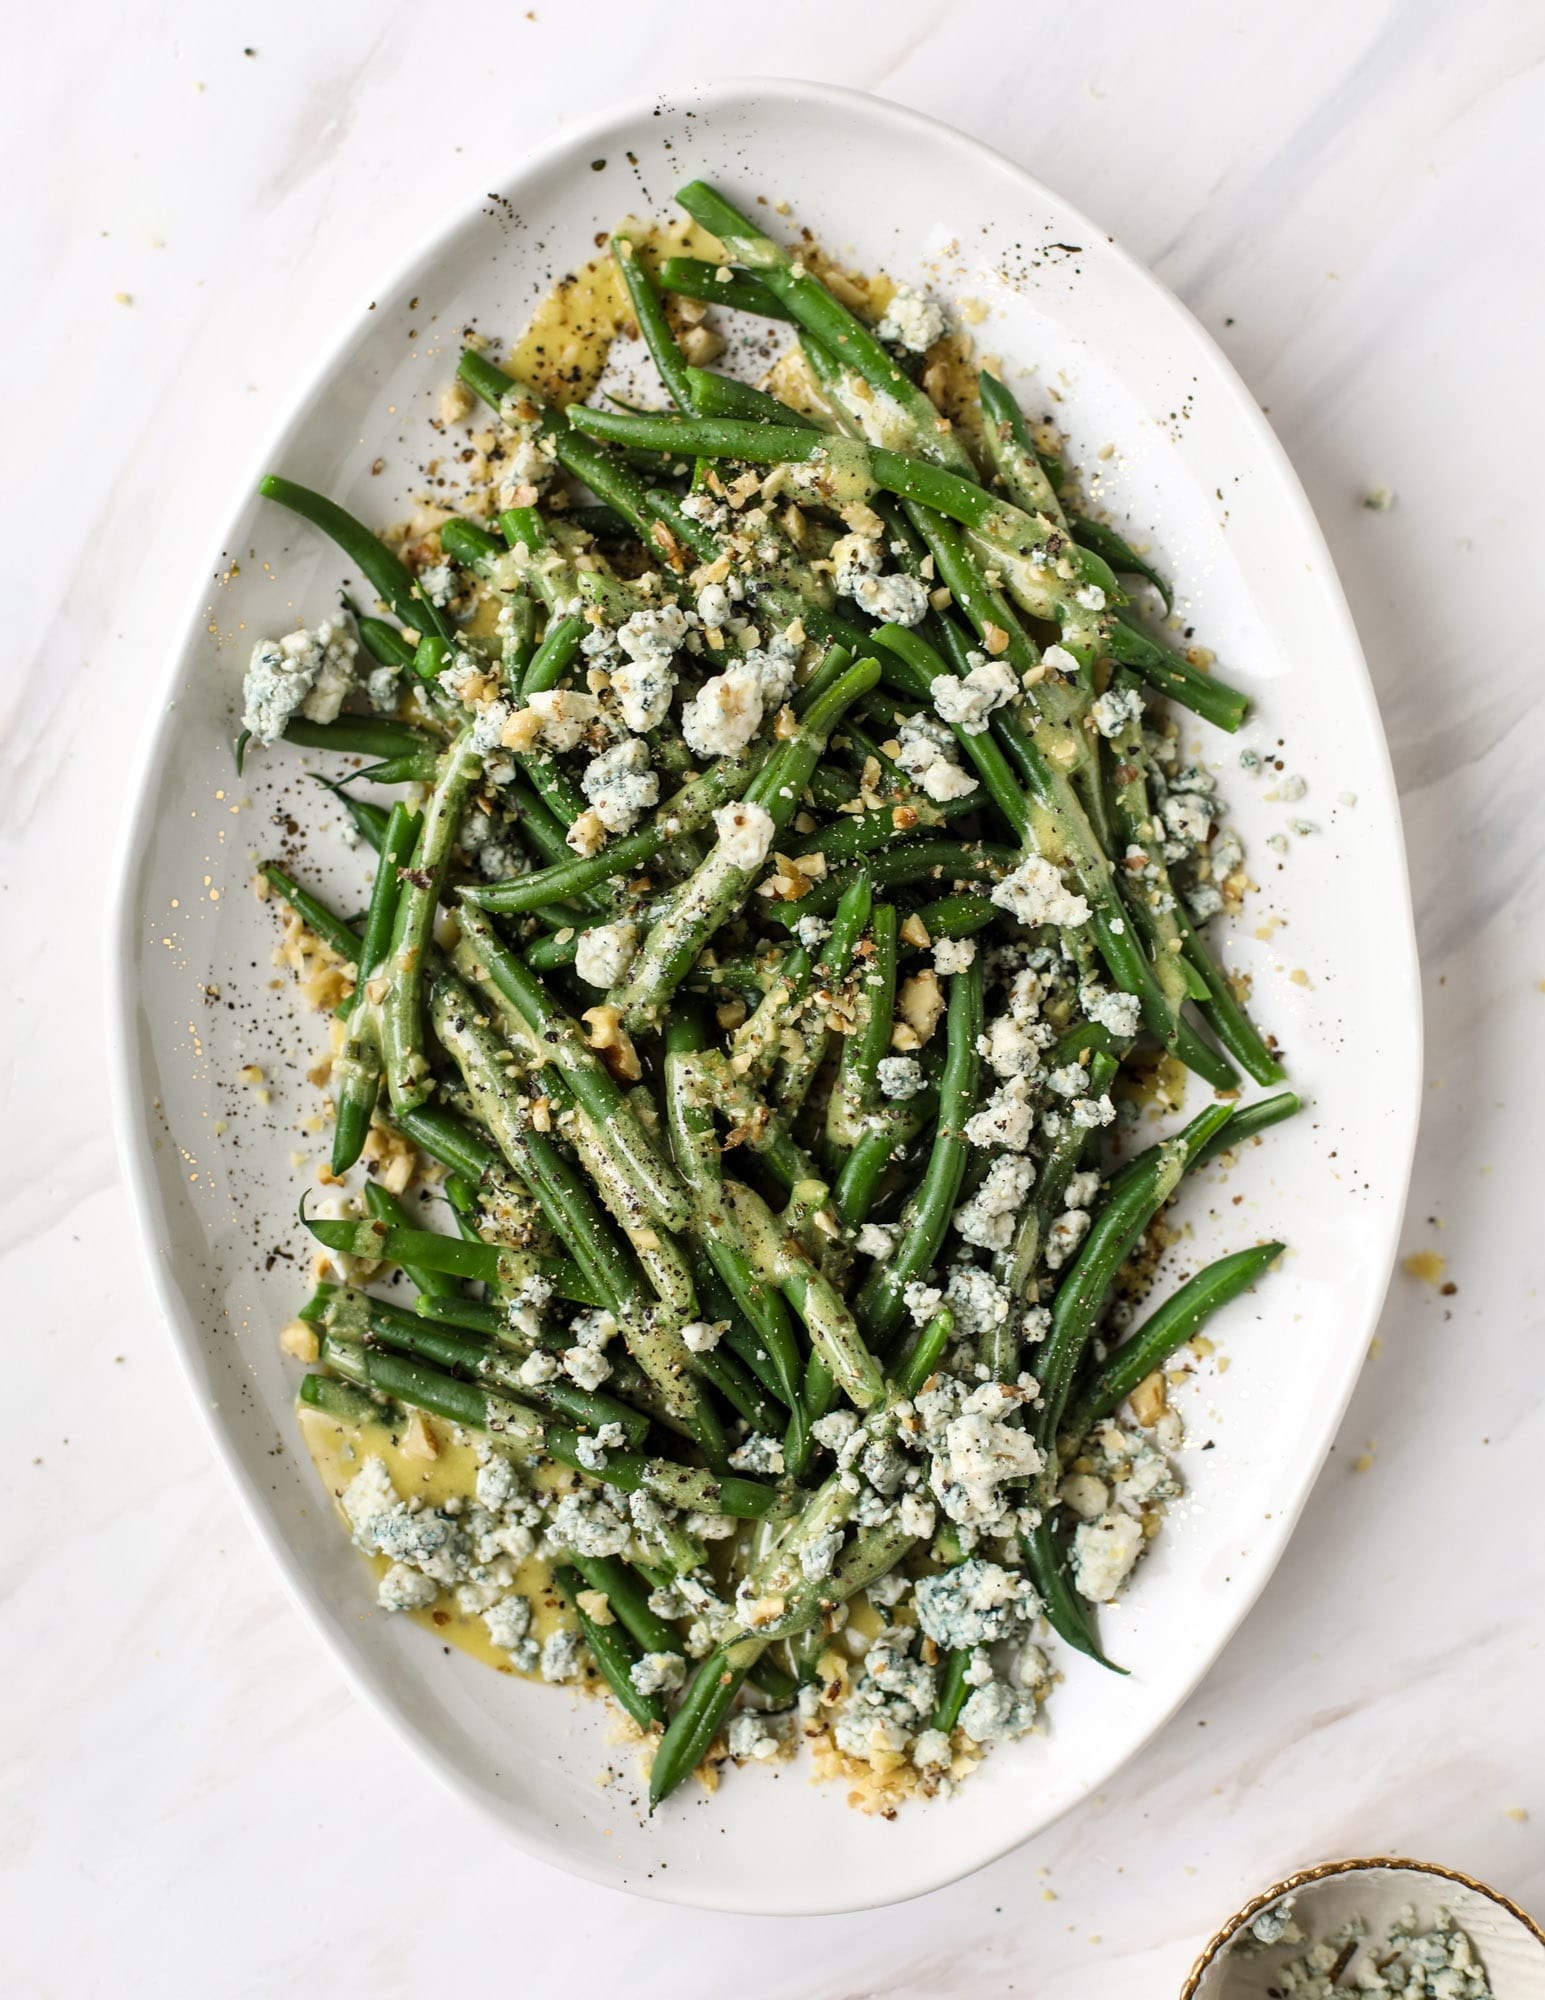 This fresh green bean salad is the ultimate summer side dish. Crisp green beans, creamy blue cheese, chopped walnuts and a dijon dressing. It's beyond!